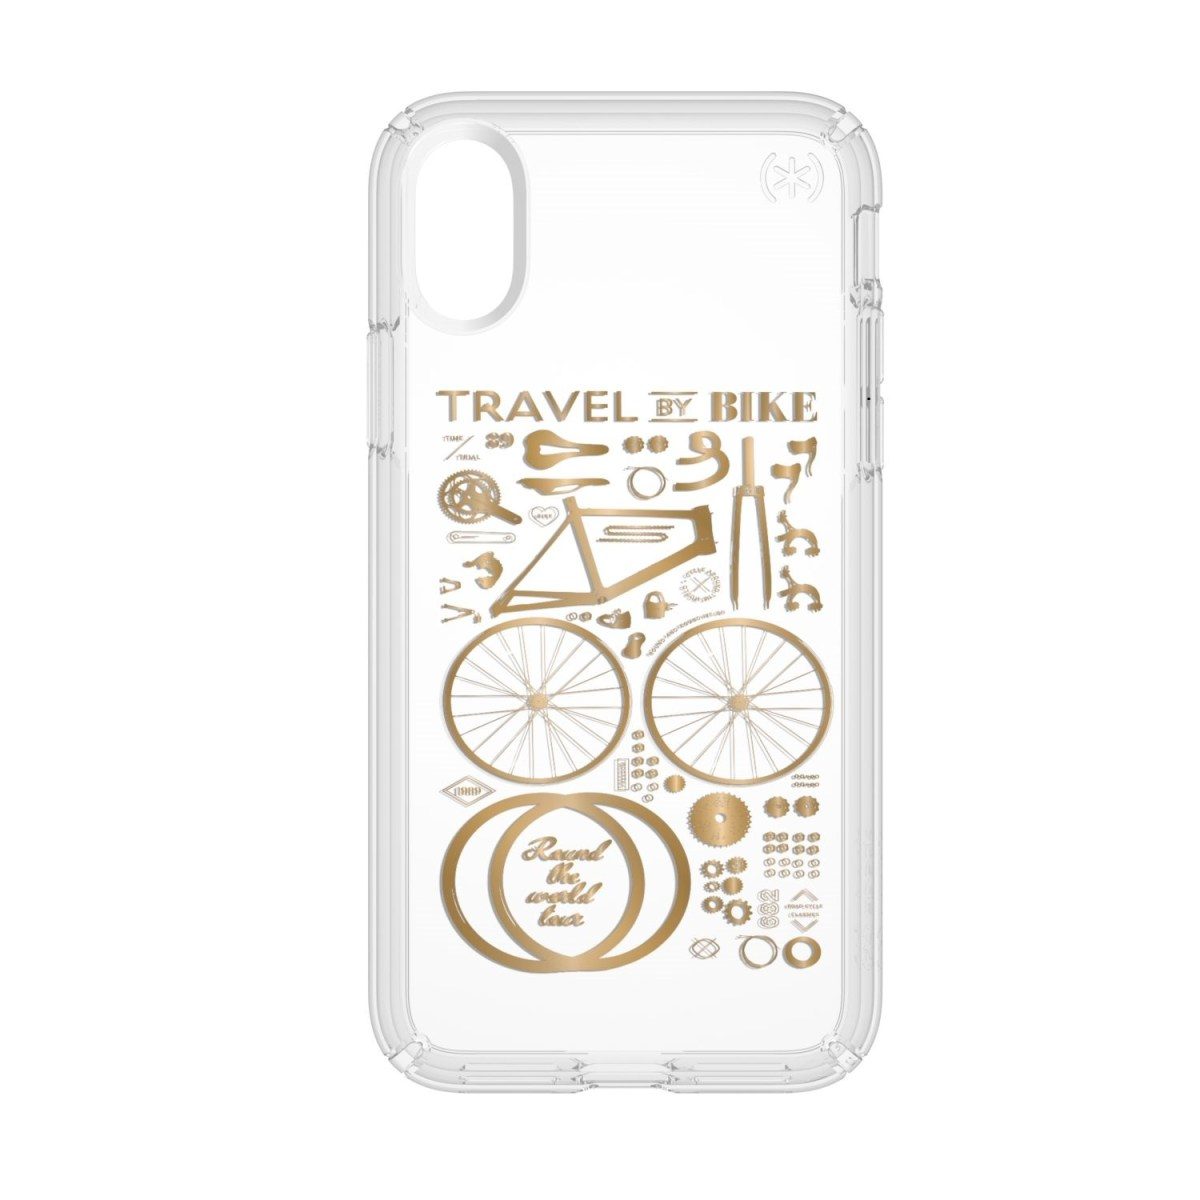 Carcasa iPhone X, Xs Presidio Clear + Print - CITY BIKE METALLIC GOLD YELLOW